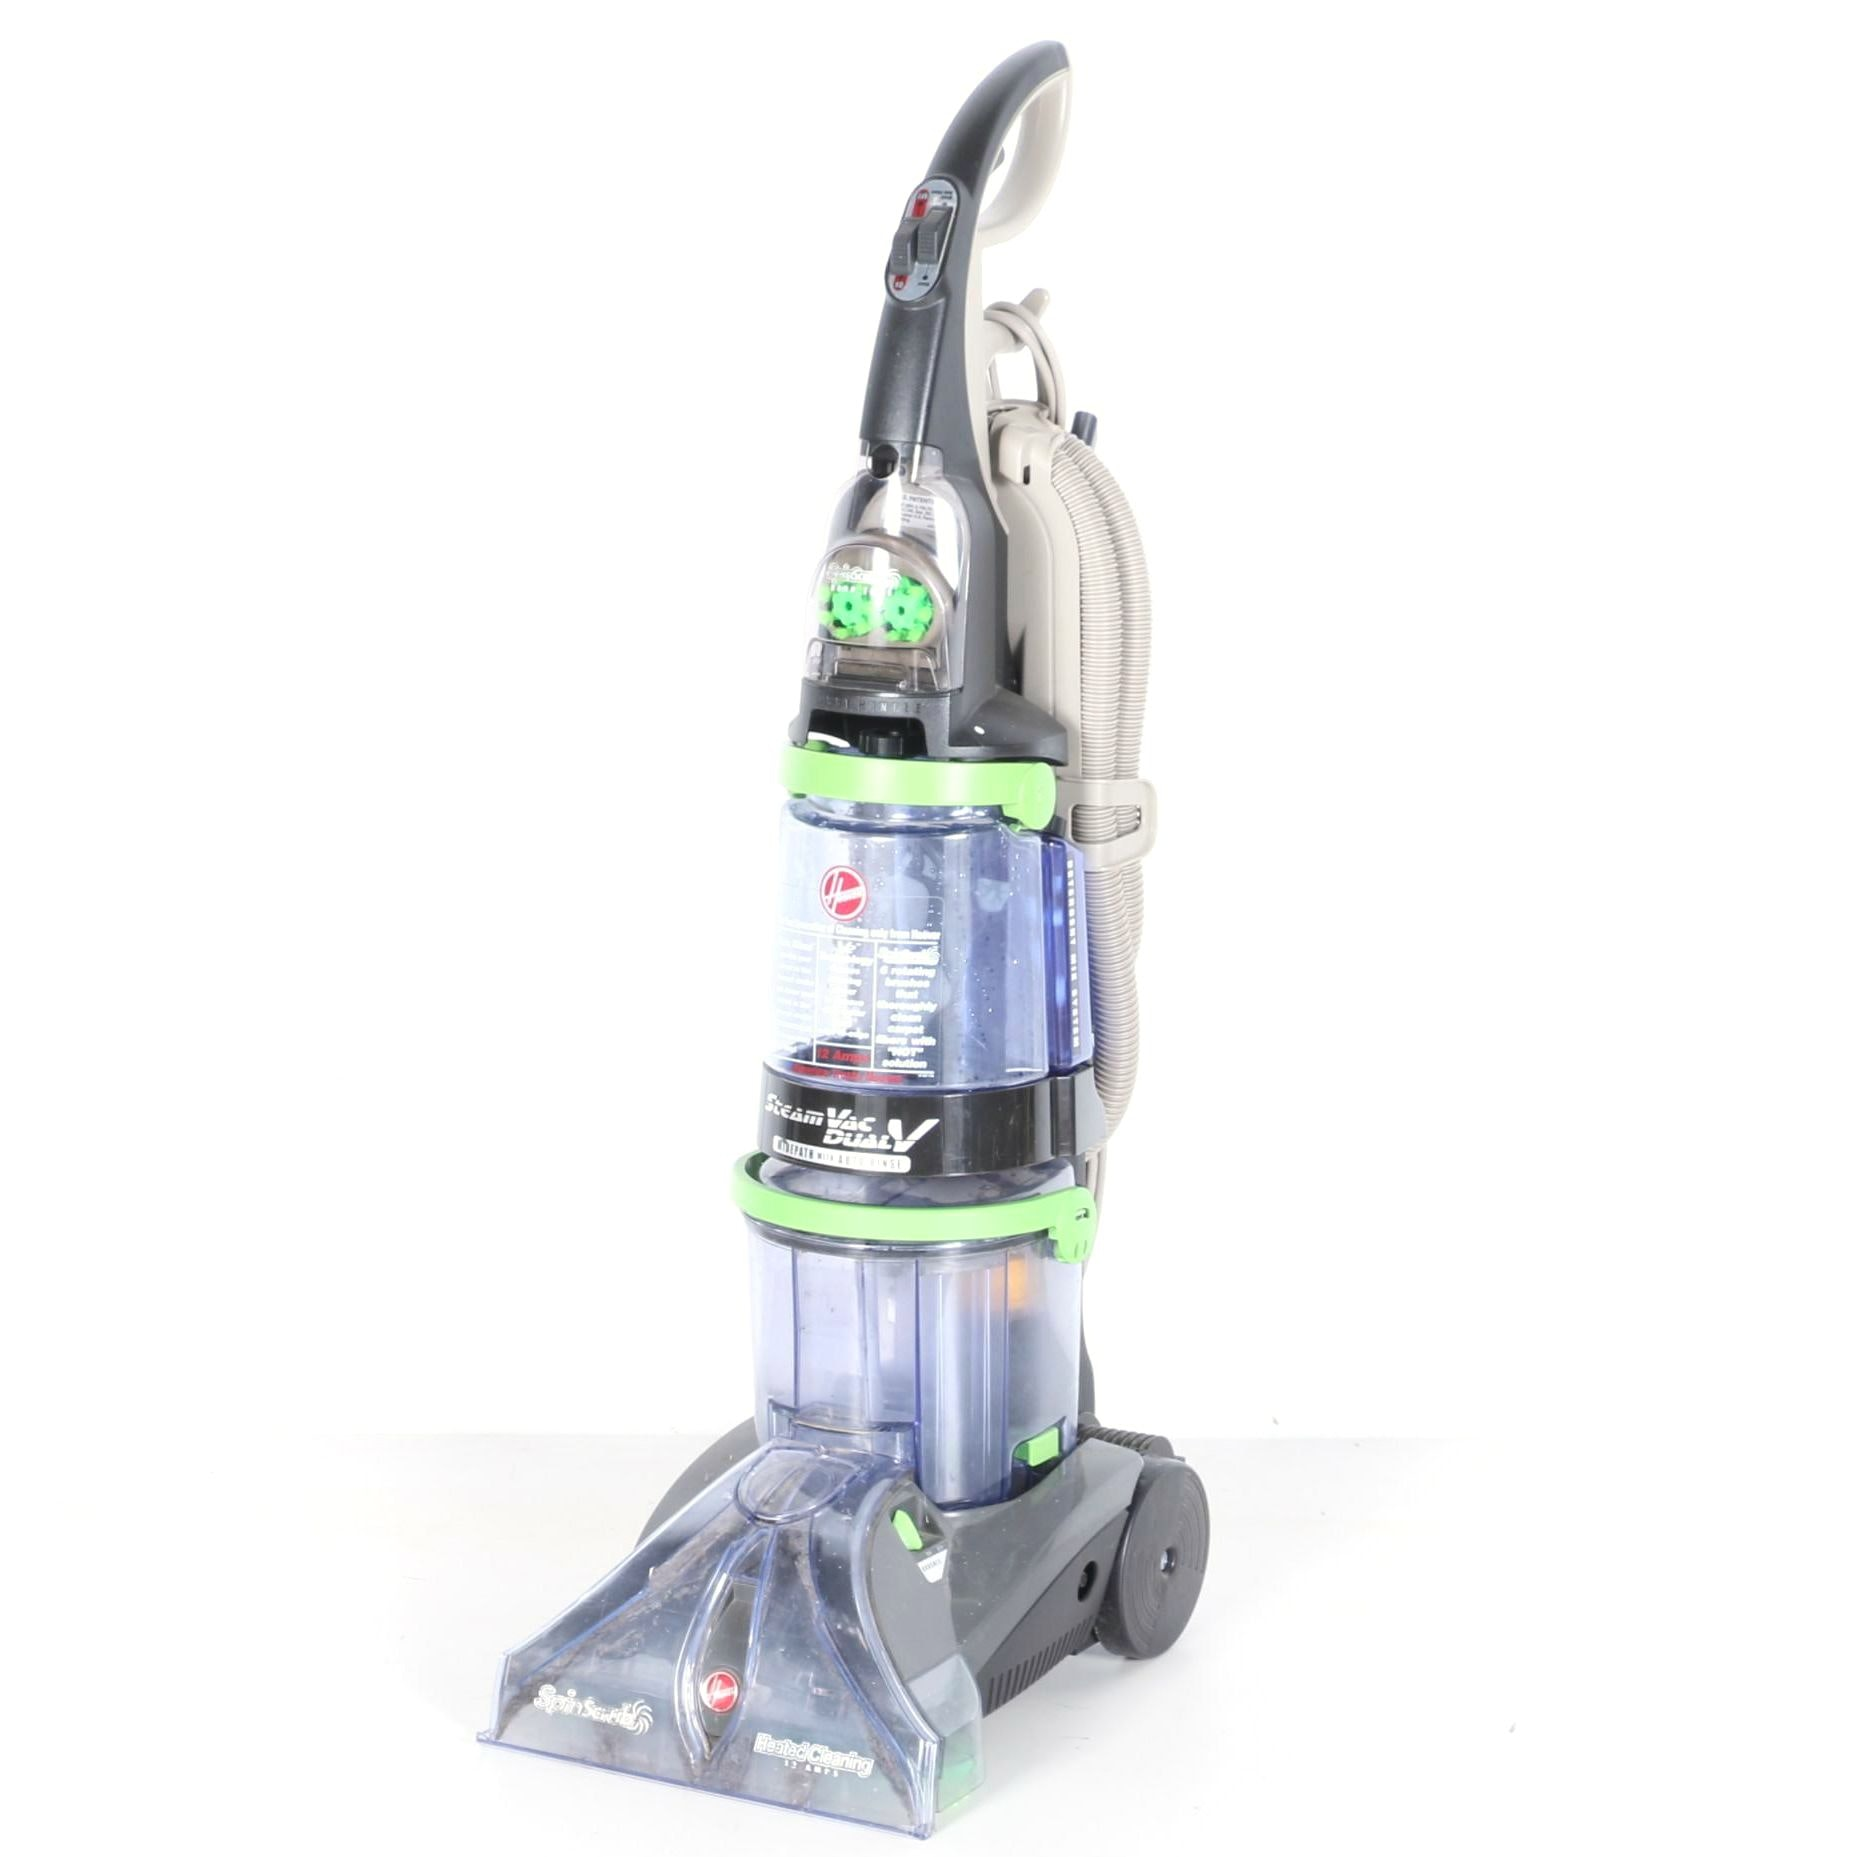 How To Use Hoover Steamvac Dual V Carpet Cleaner Www